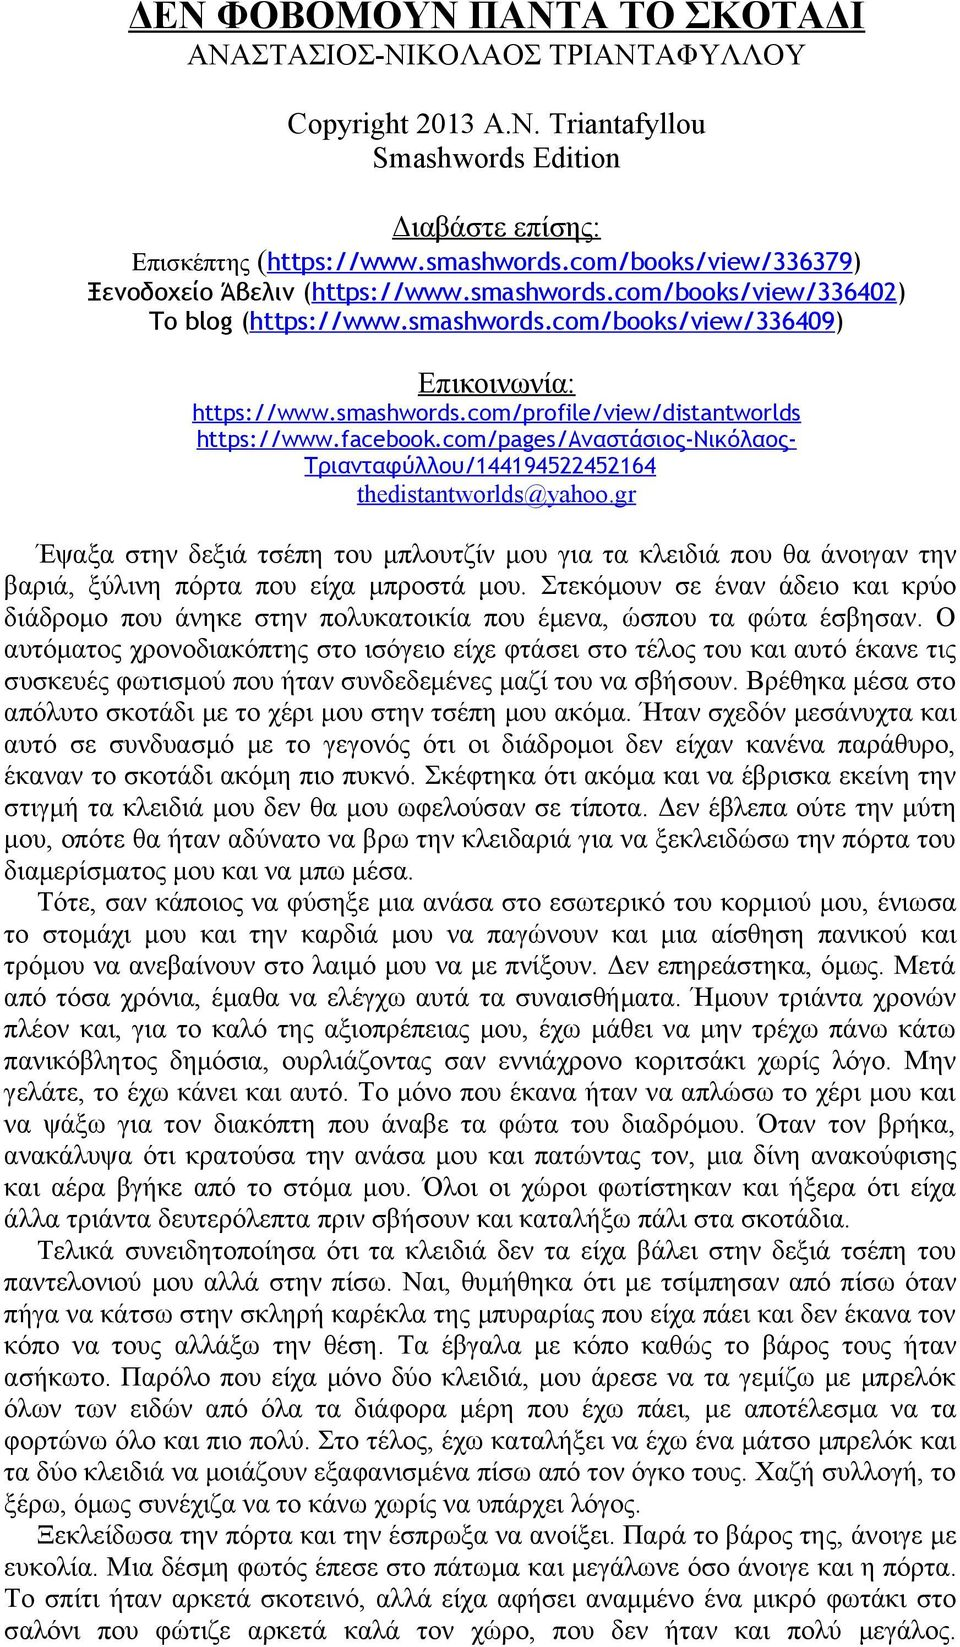 facebook.com/pages/αναστάσιος-νικόλαος- Τριανταφύλλου/144194522452164 thedistantworlds@yahoo.